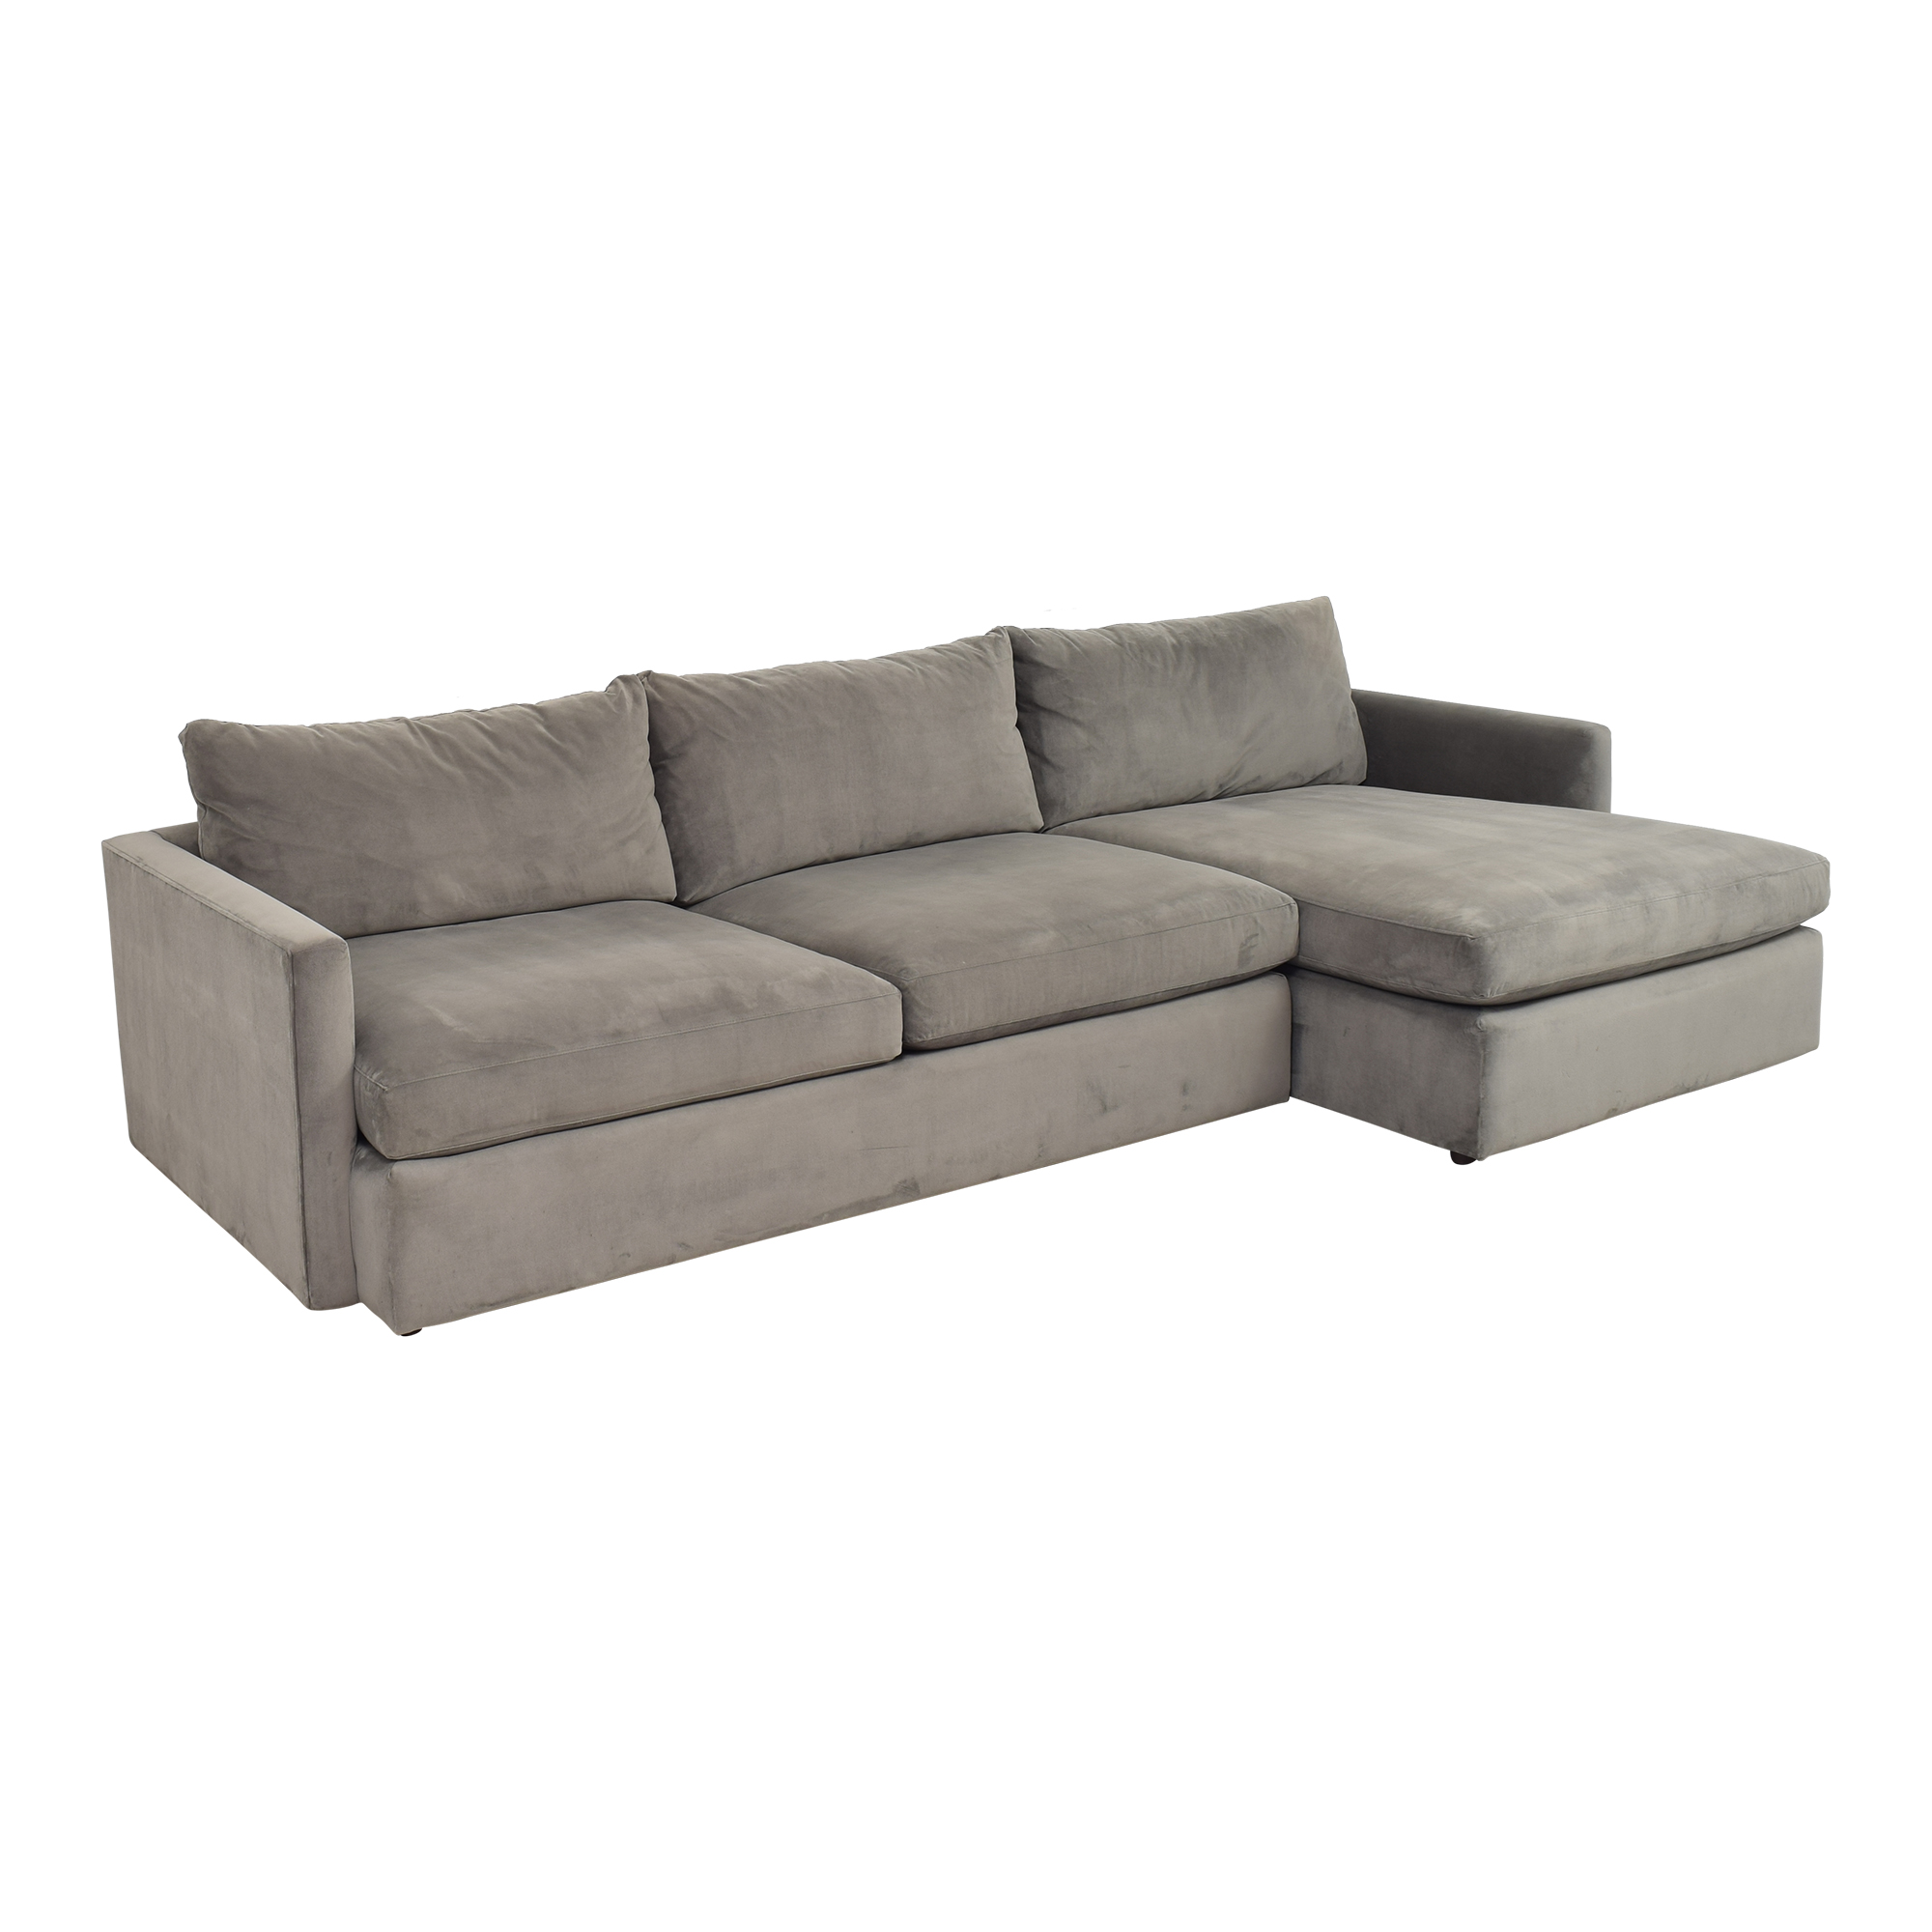 Crate & Barrel Lounge II Chaise Sectional Sofa / Sectionals